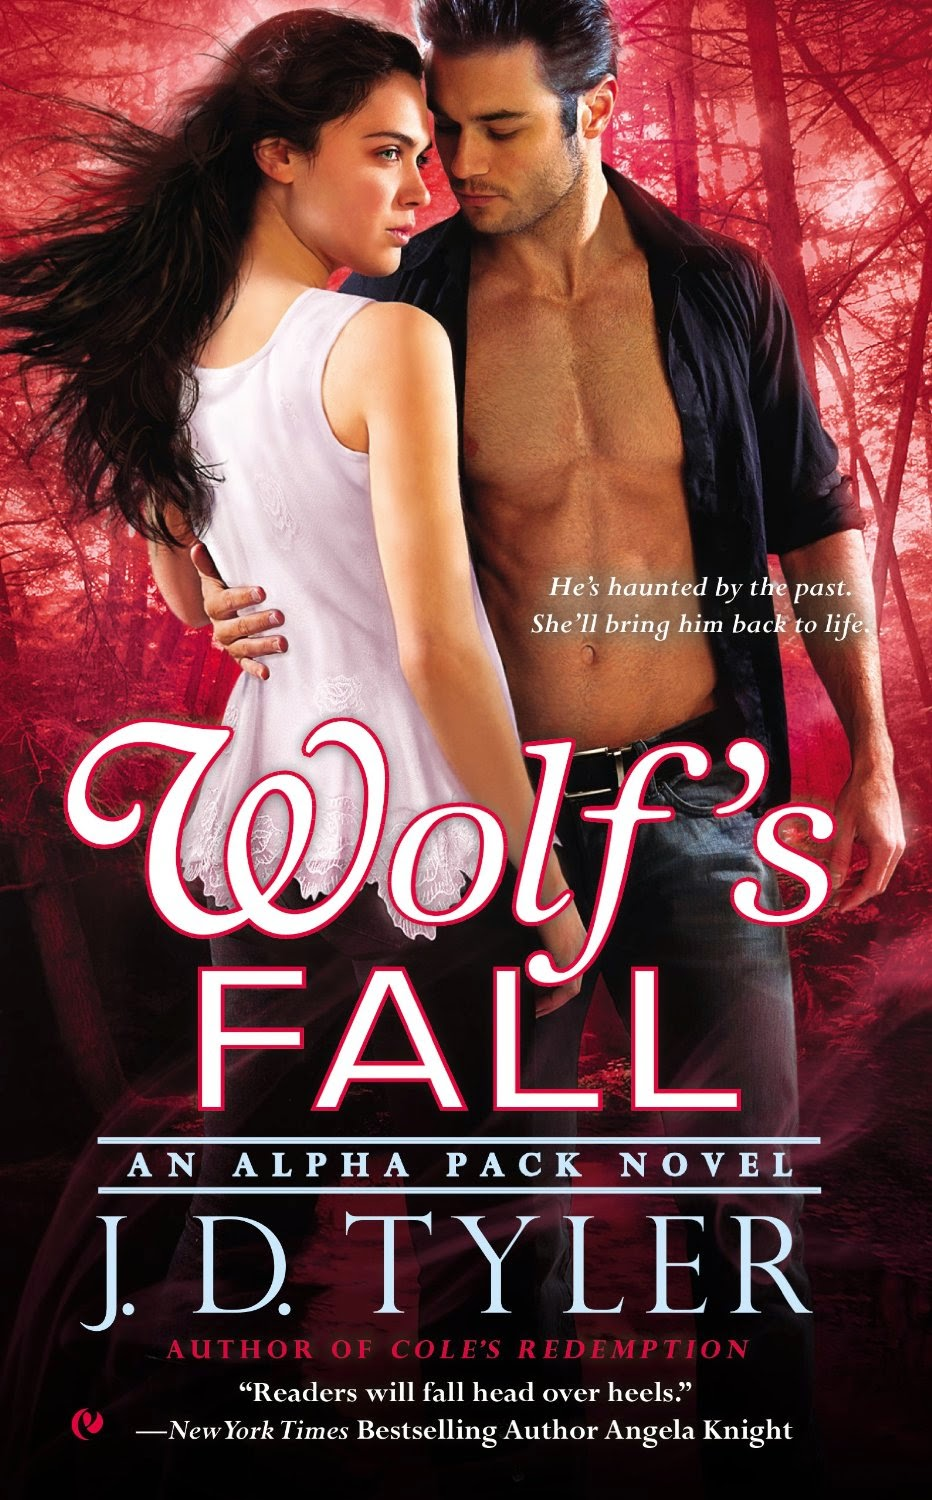 Wolf's Fall: An Alpha Pack Novel by J.D. Tyler (PNR)